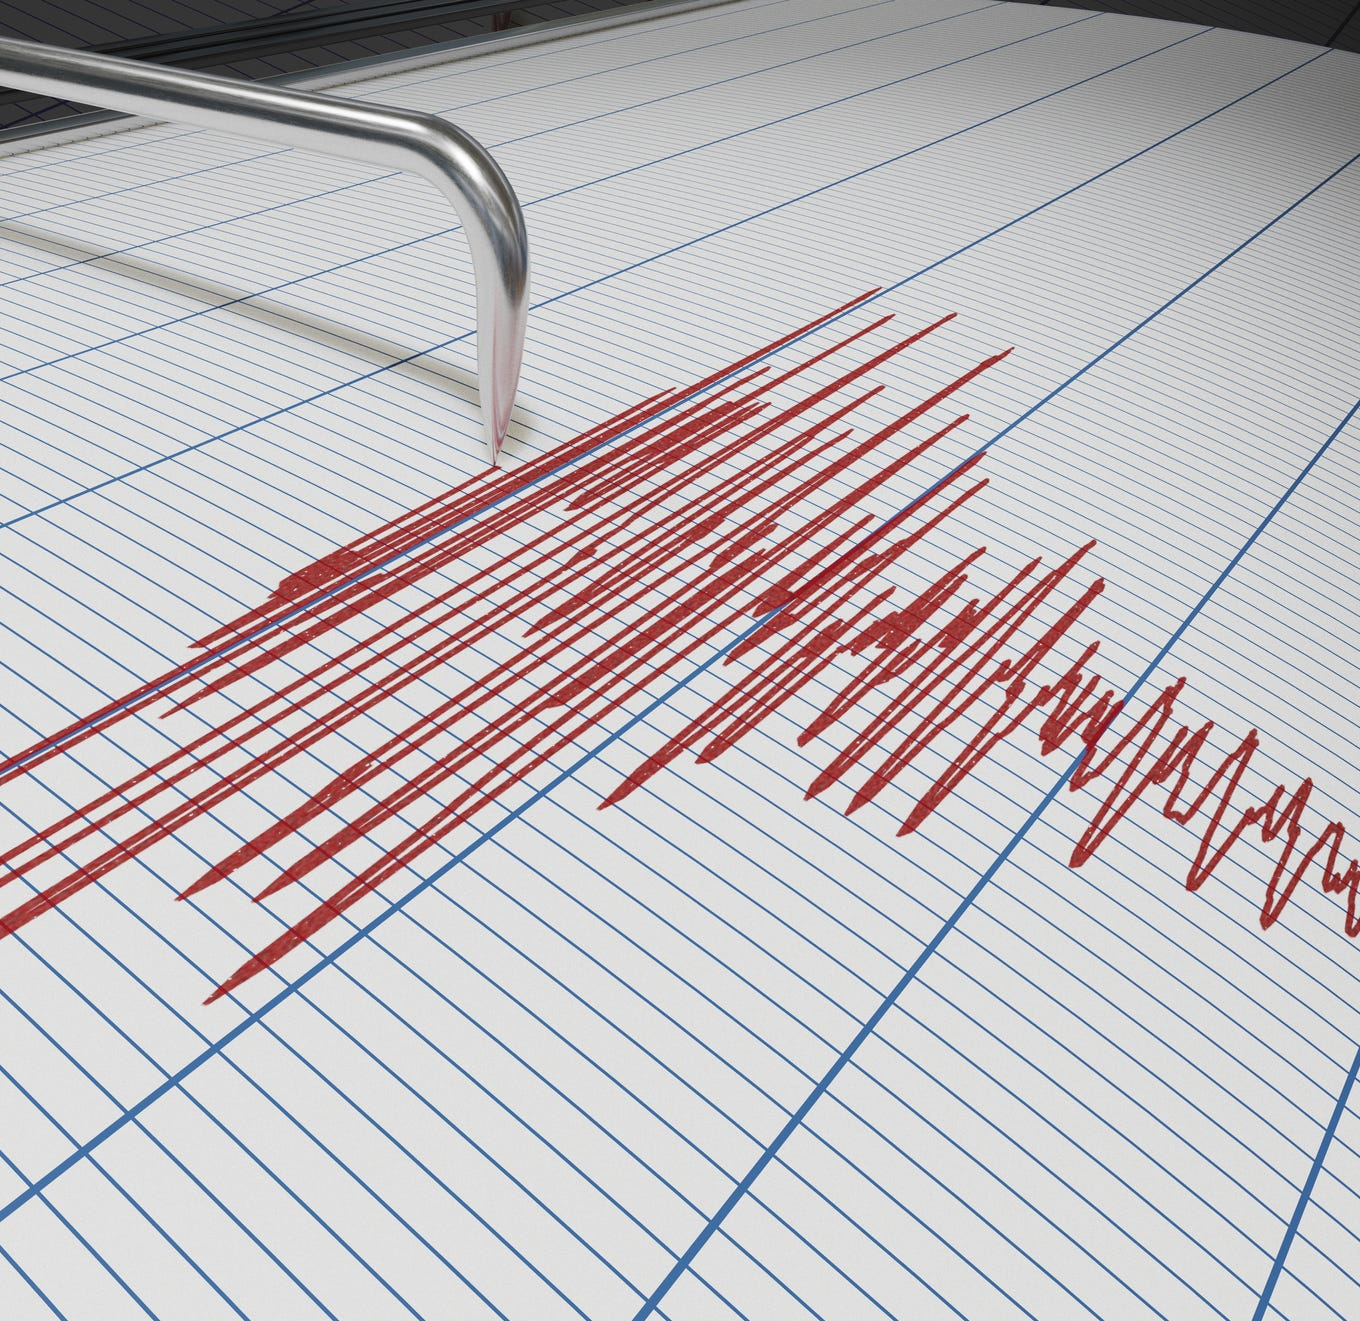 Earthquake, rumble or something else? Seismologist says Space Coast rattle remains unidentified